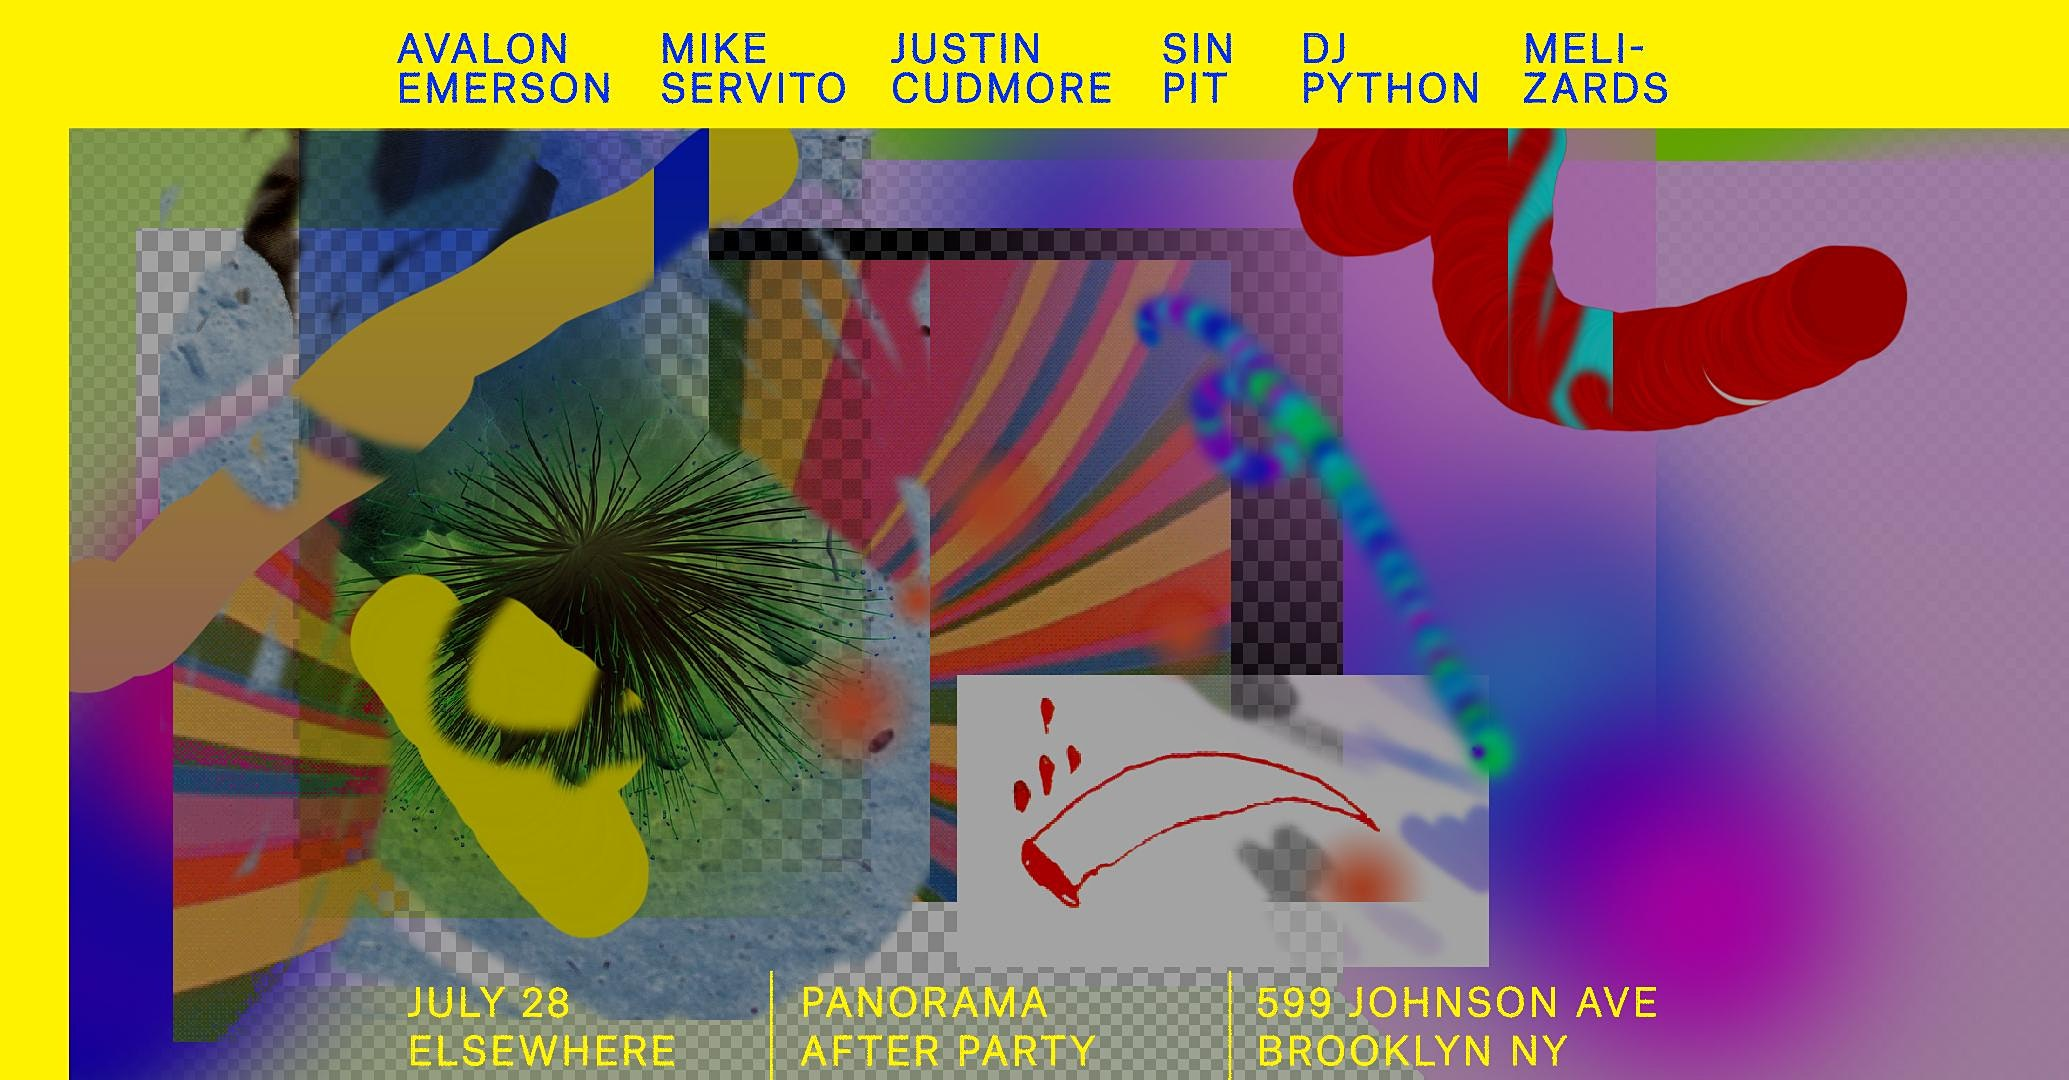 Avalon Emerson, Mike Servito, DJ Python, Justin Cudmore, SIN-PIT & Melizards (Panorama Afterparty)